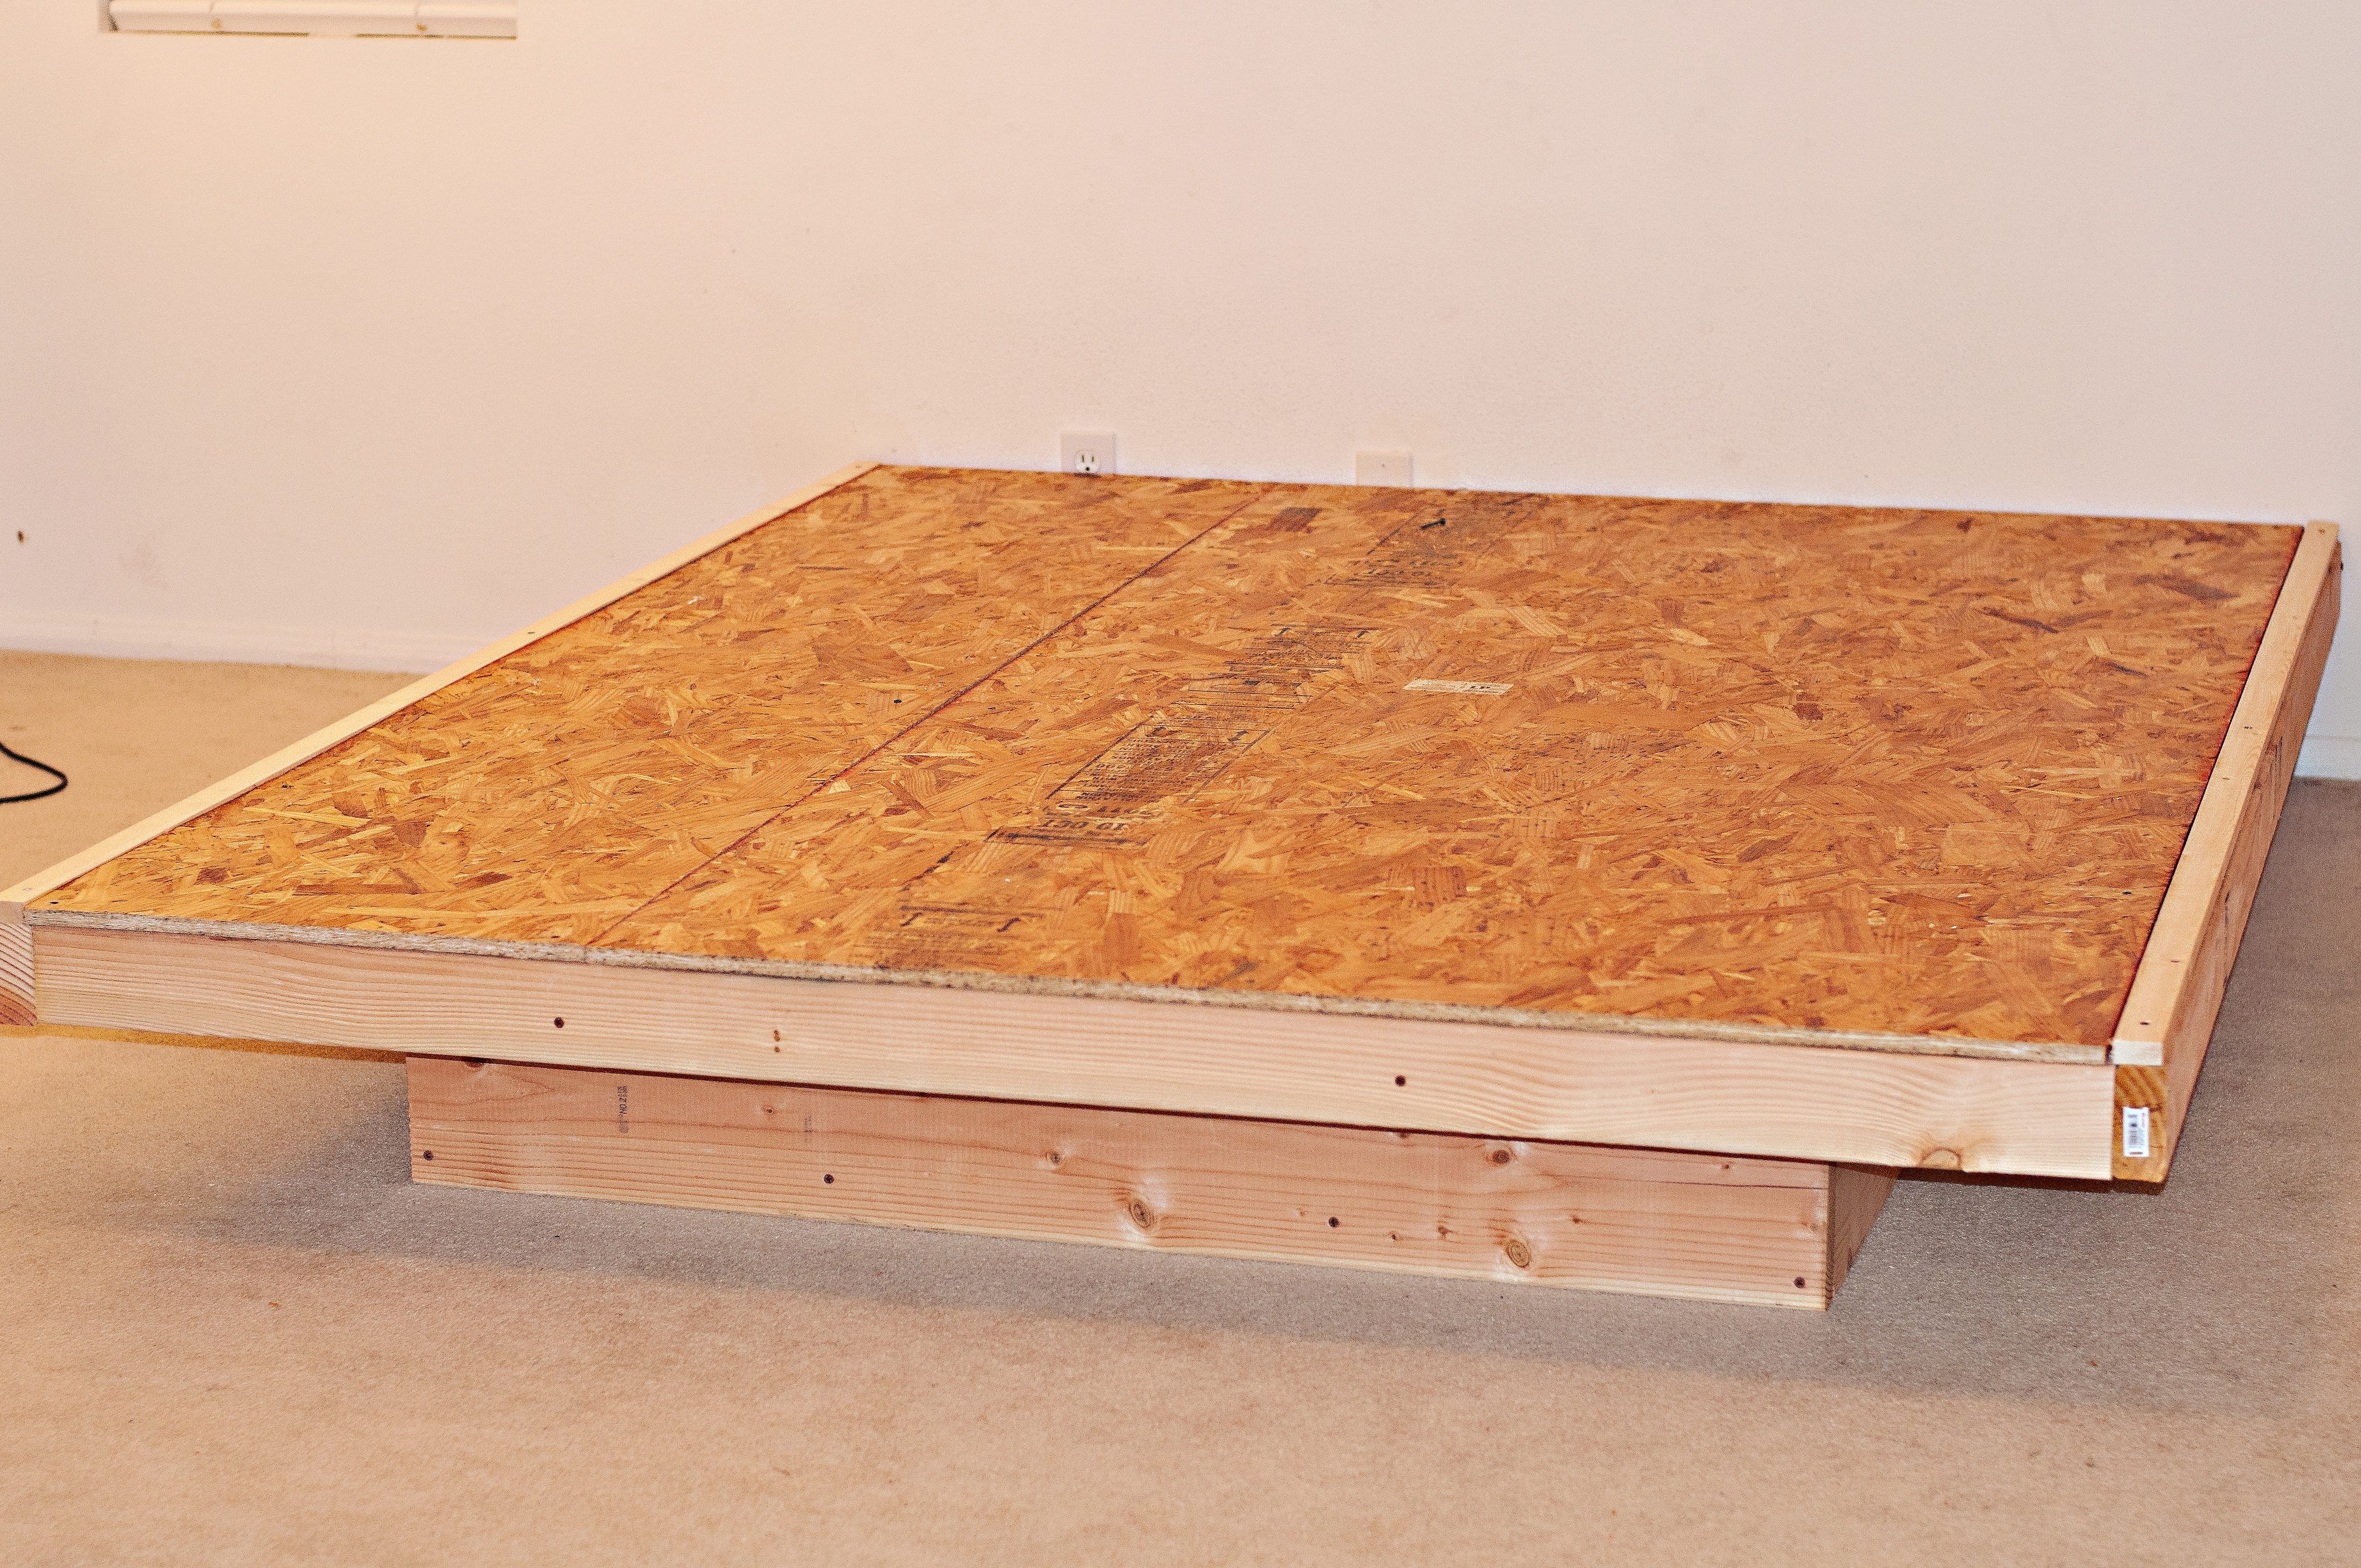 ... board 4ft x8ft, I had one cut by home depot to make the 68″ width